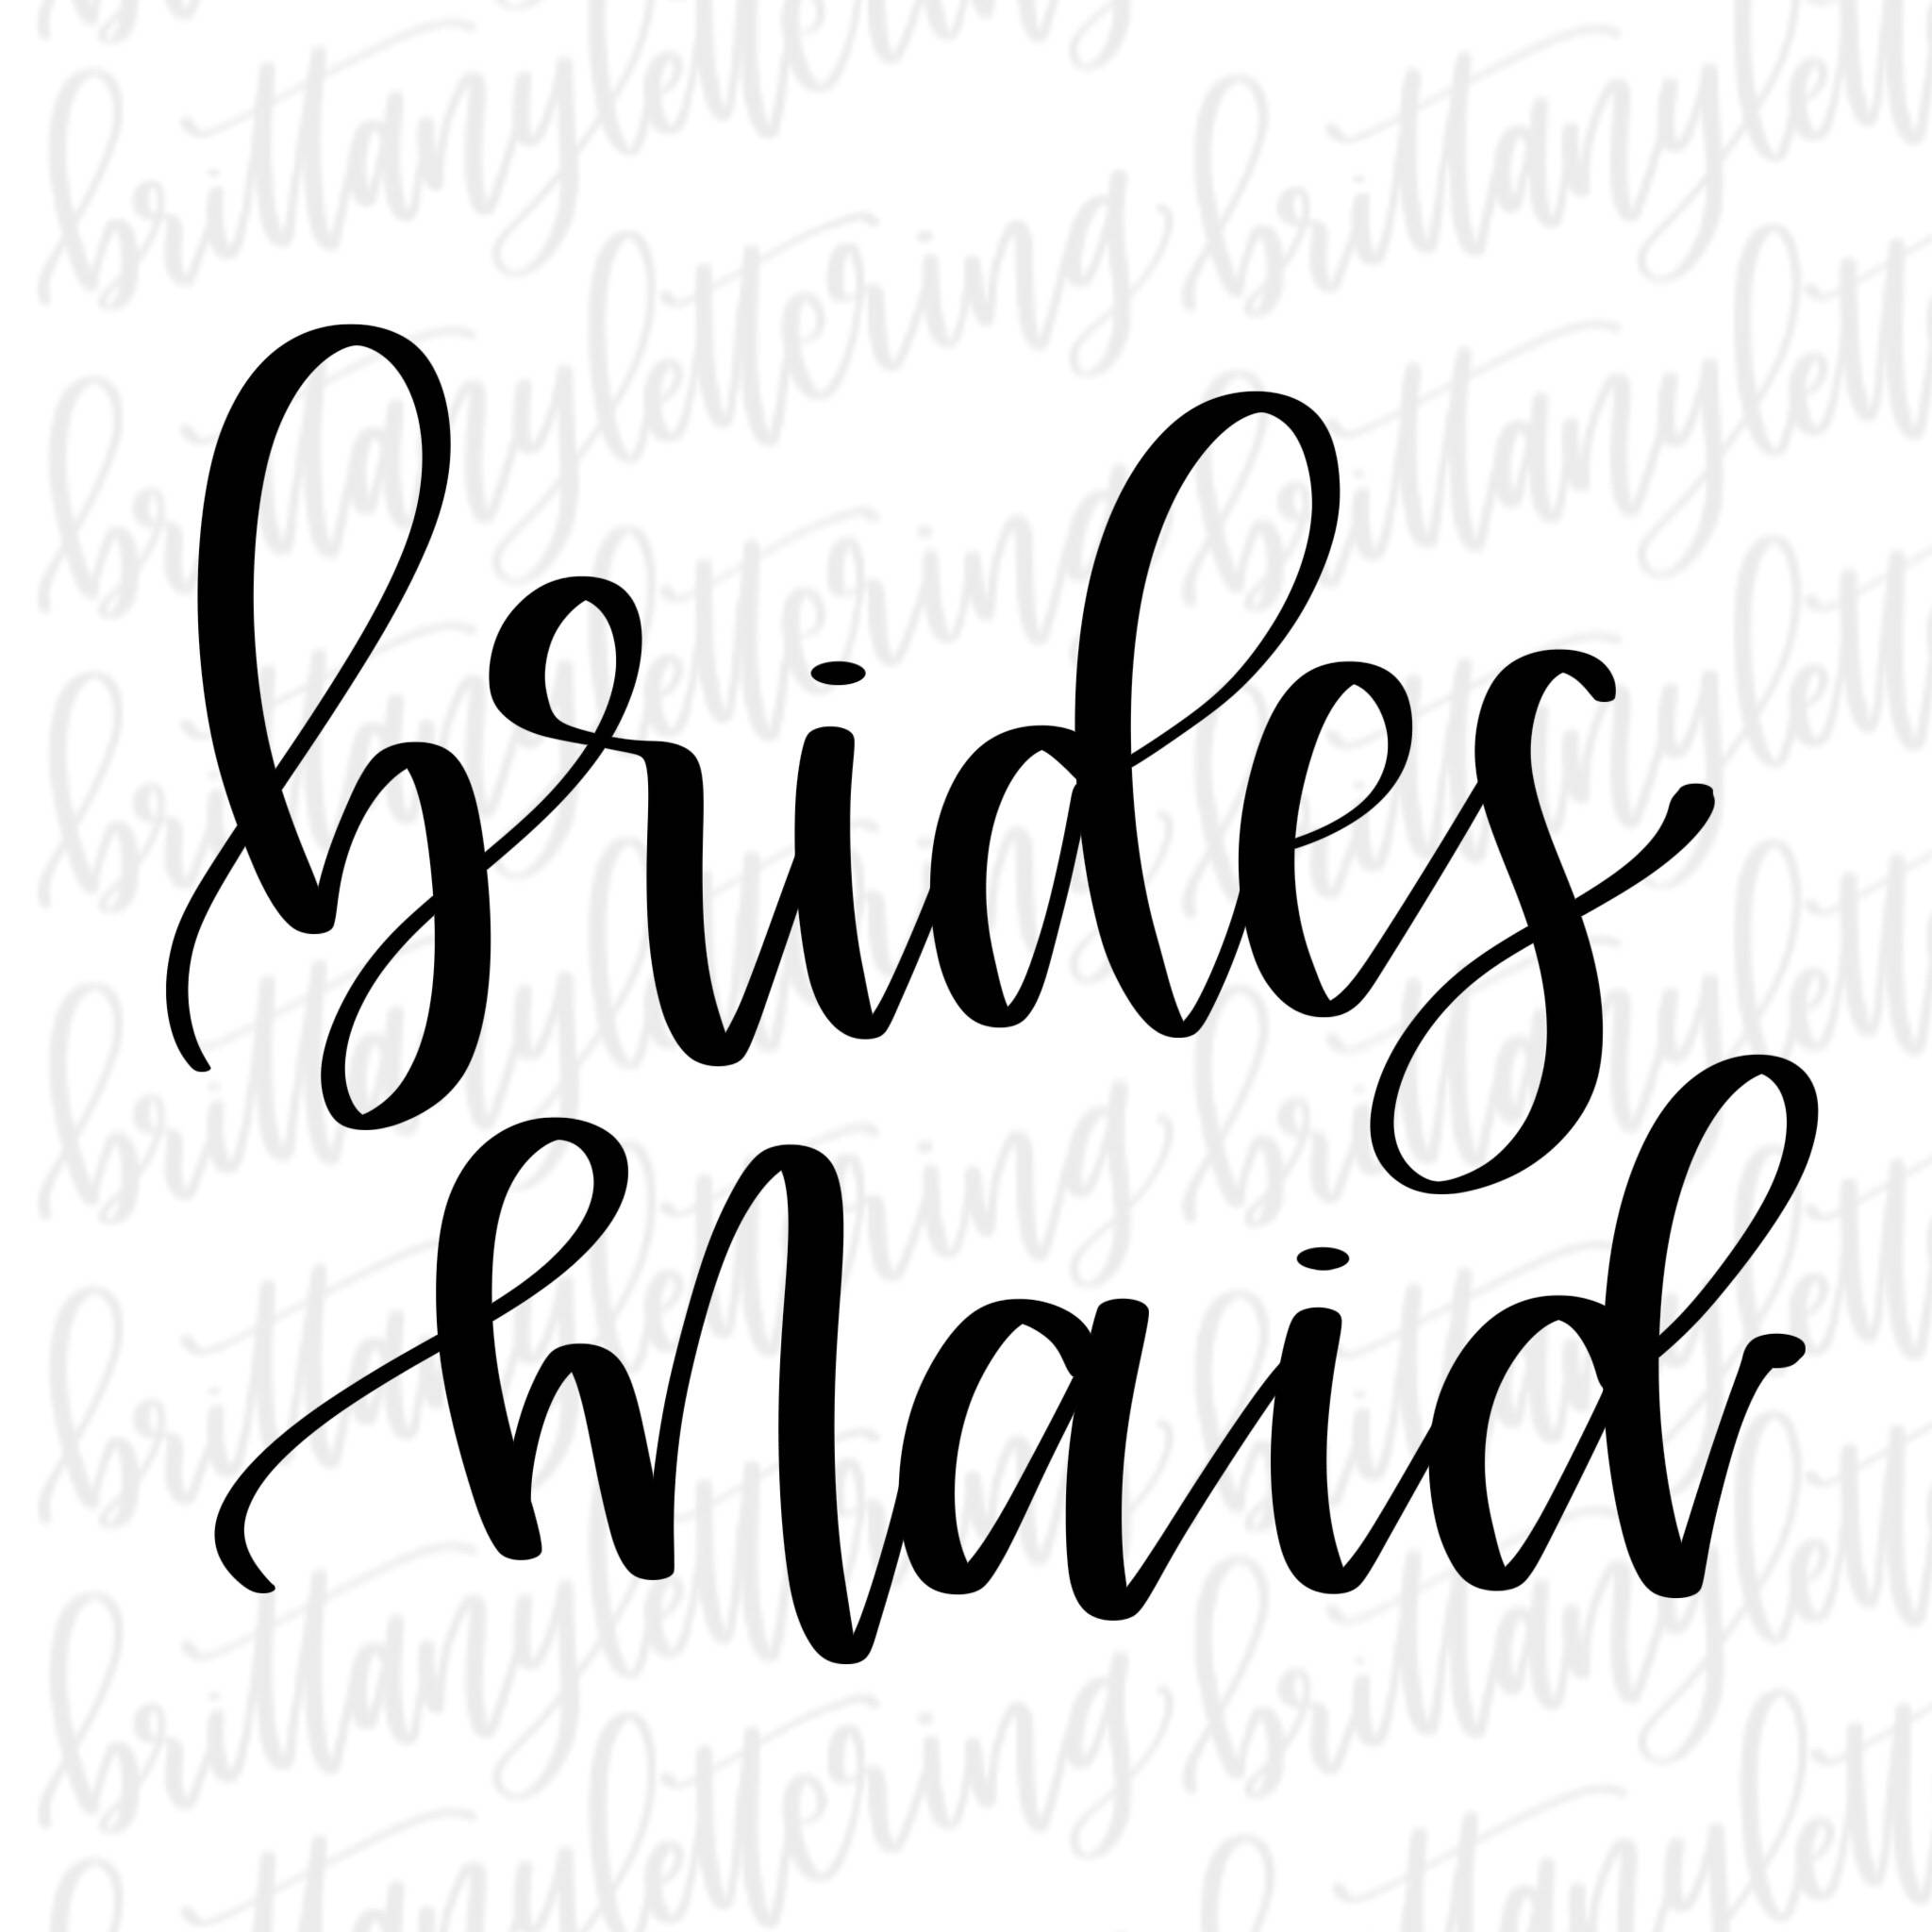 Collection of Bridesmaid clipart.